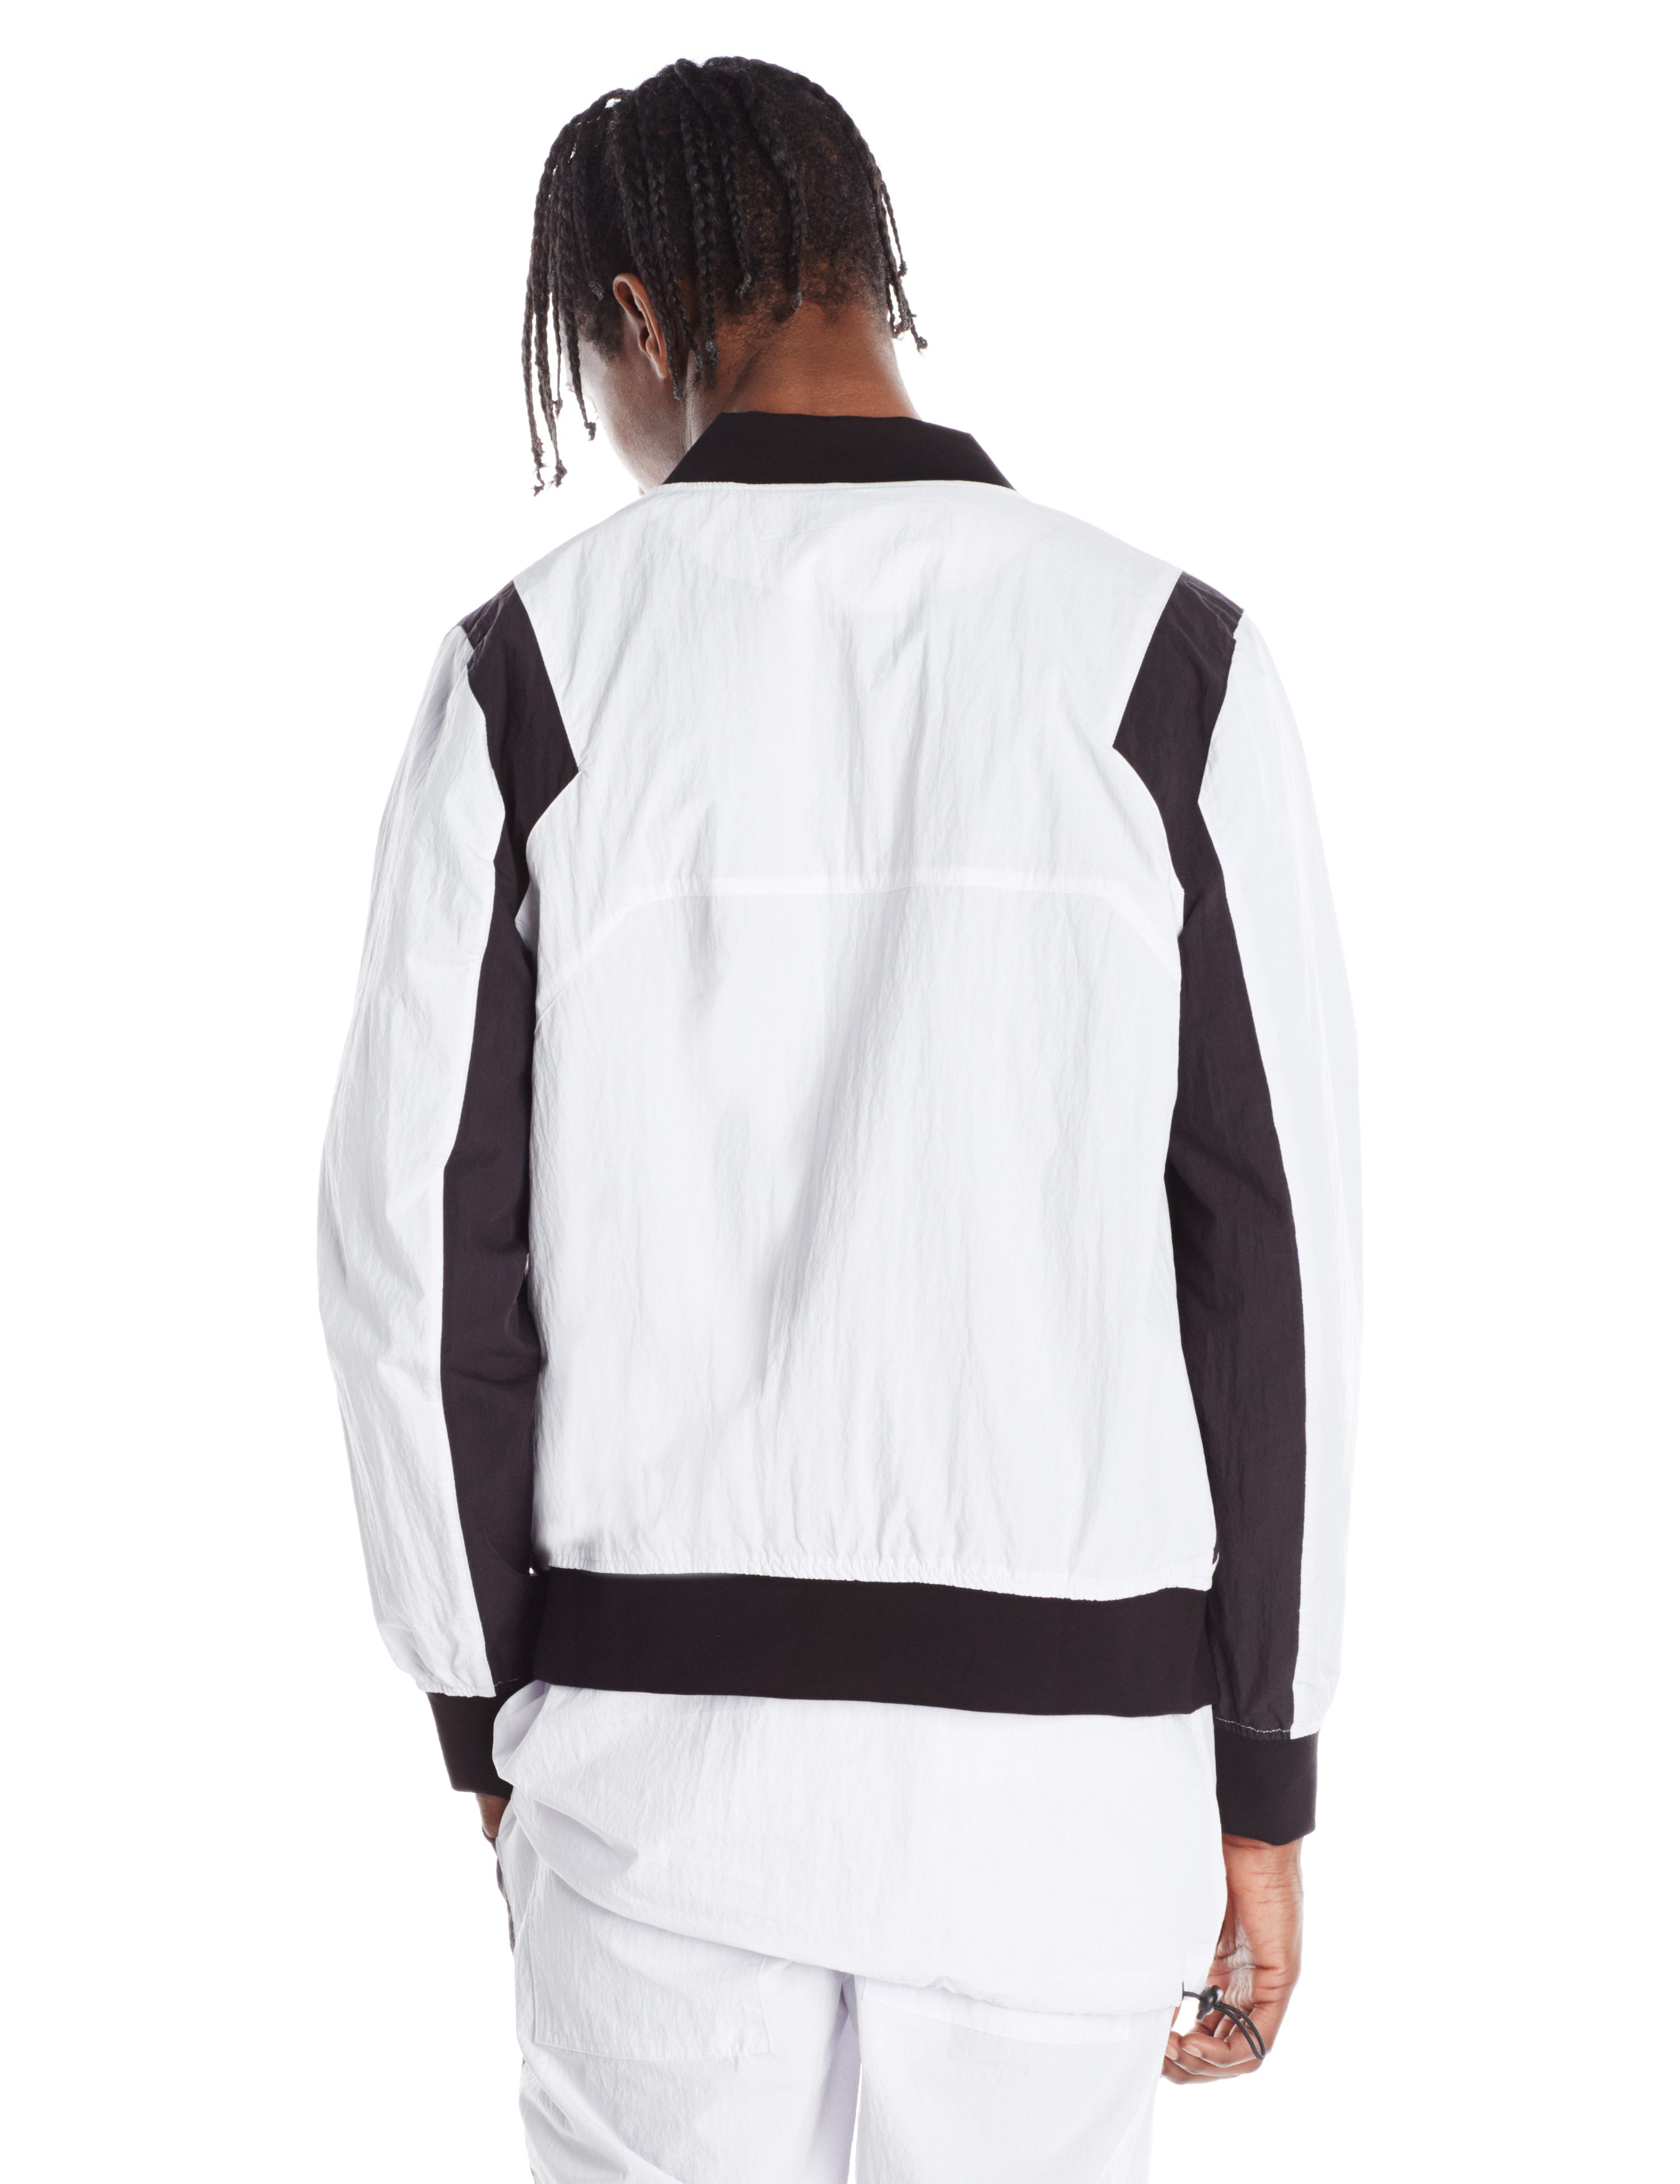 BACK-MALWARE BOMBER WHITE BLACK.1923